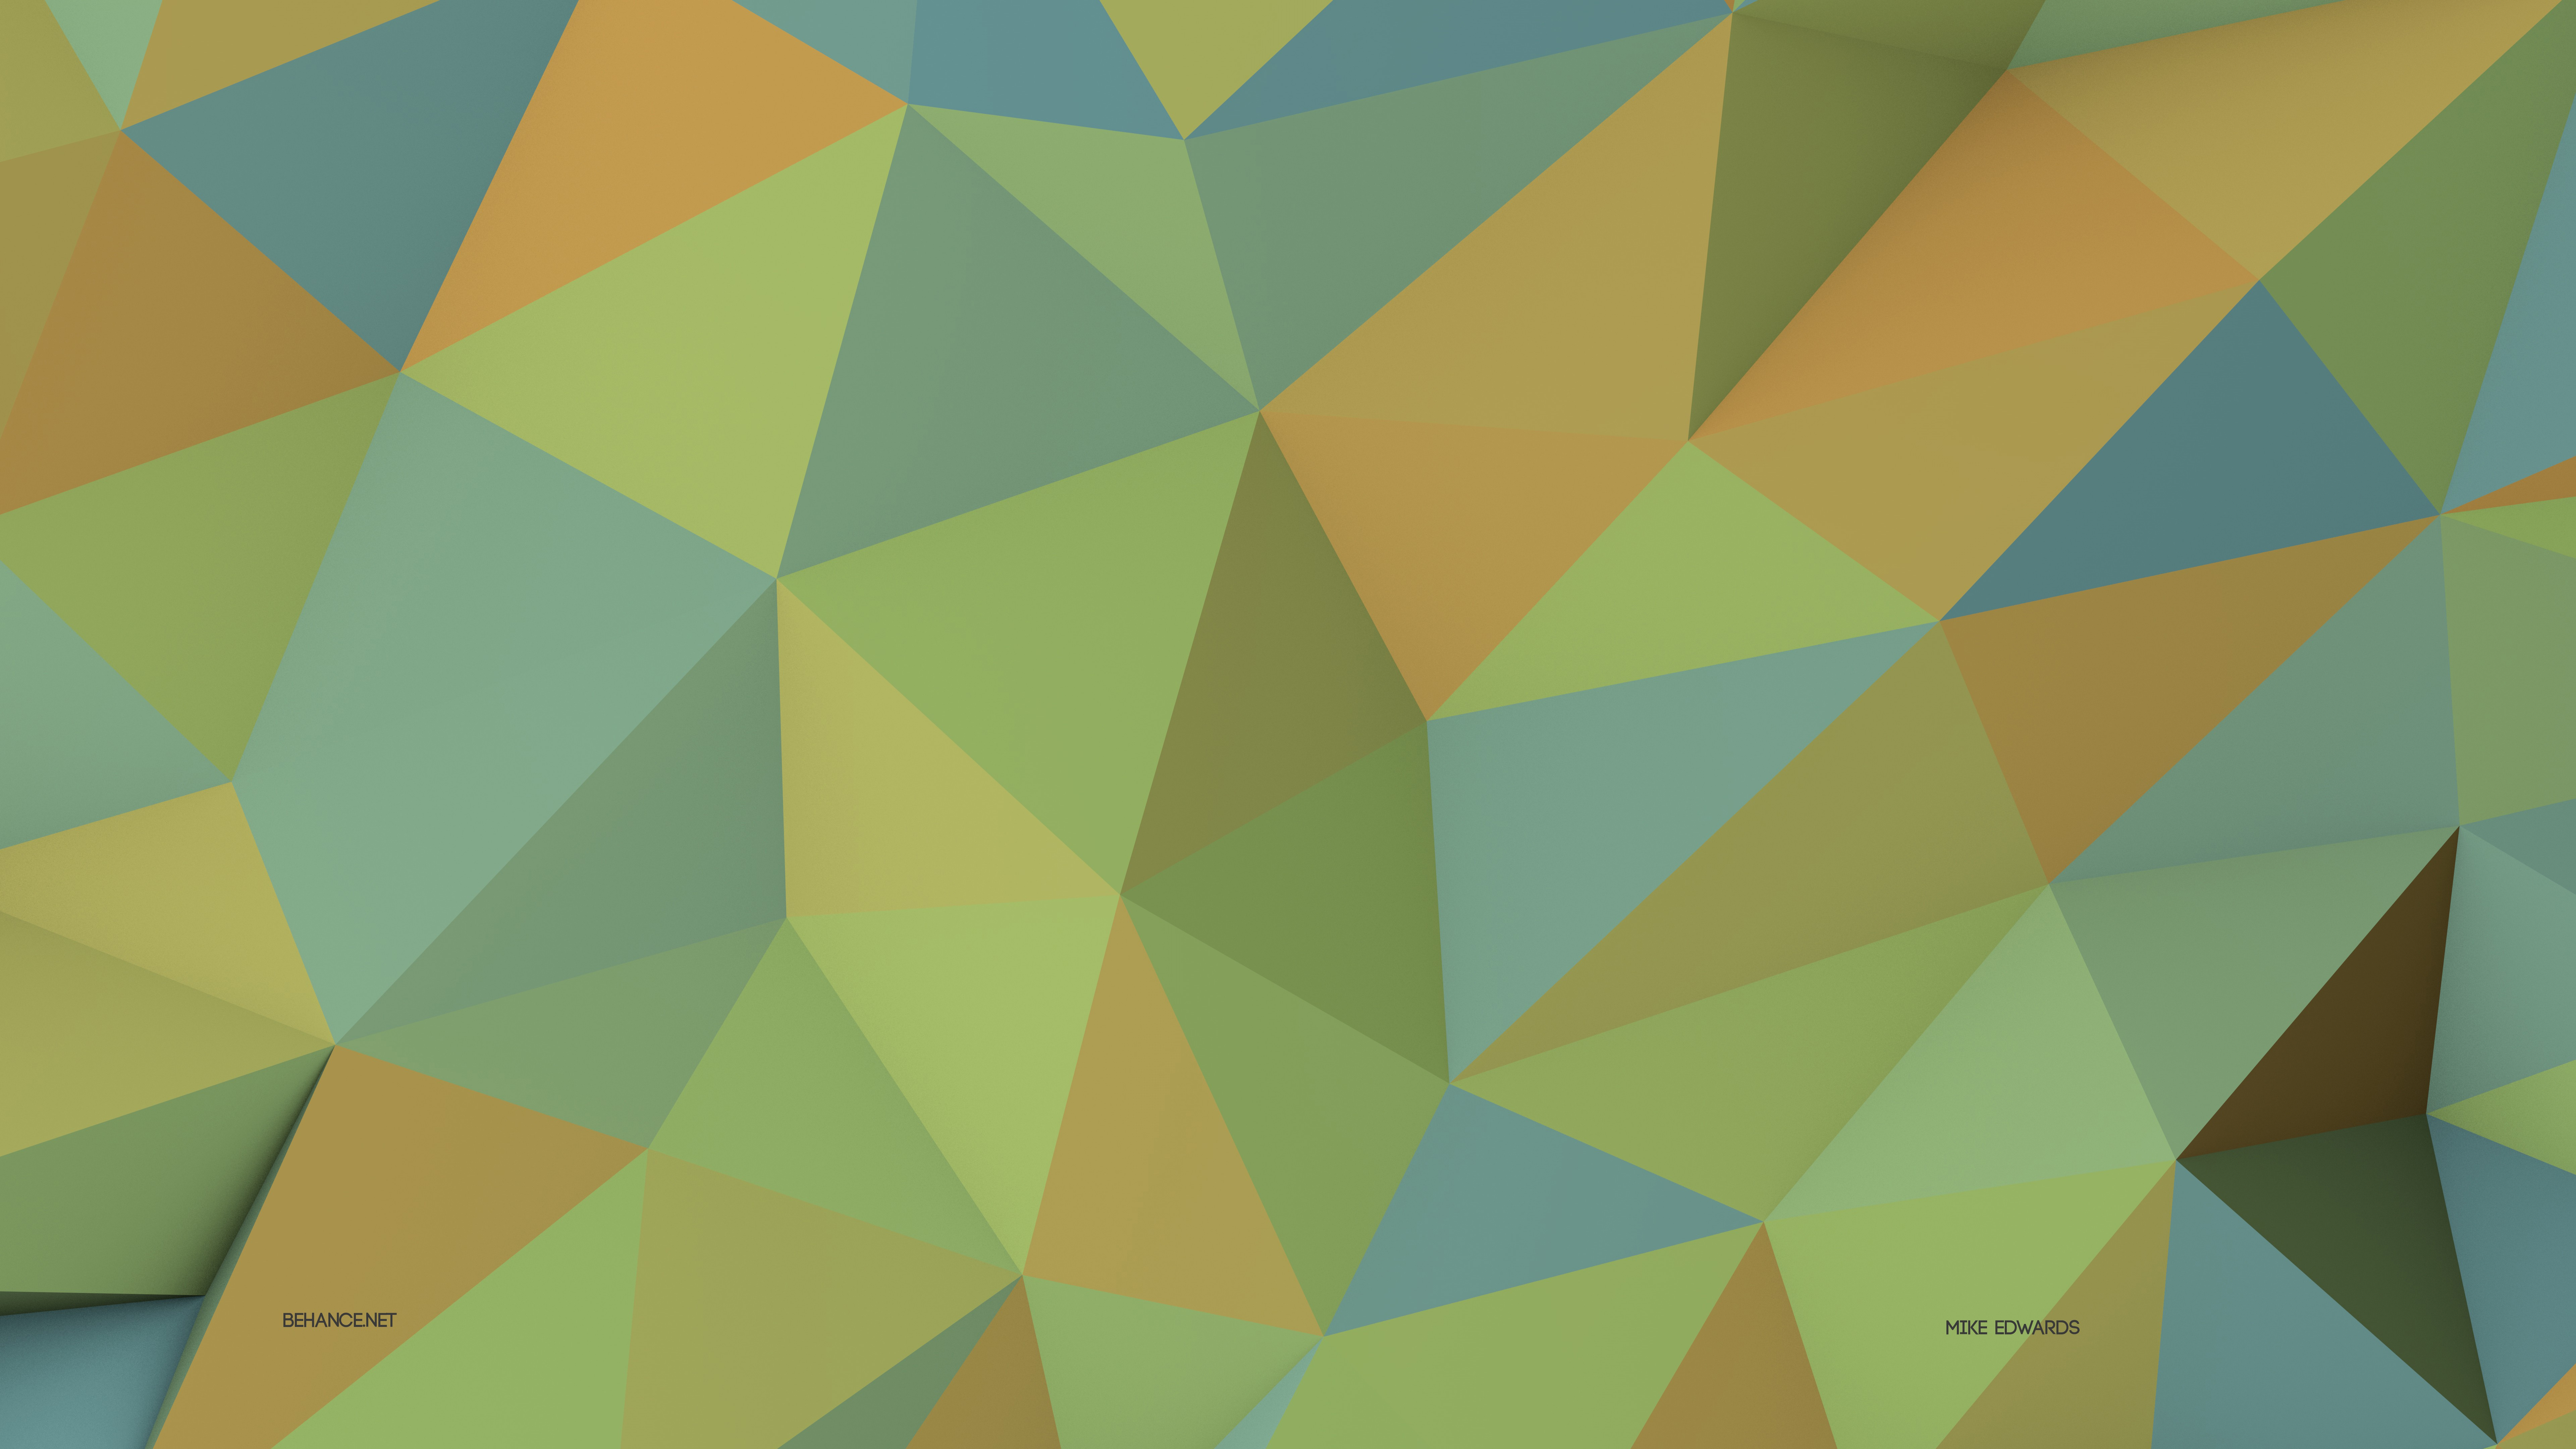 Agreen And Blue Cute Wallpaper Wallpaper Polygon 4k 5k Wallpaper 8k Green Yellow